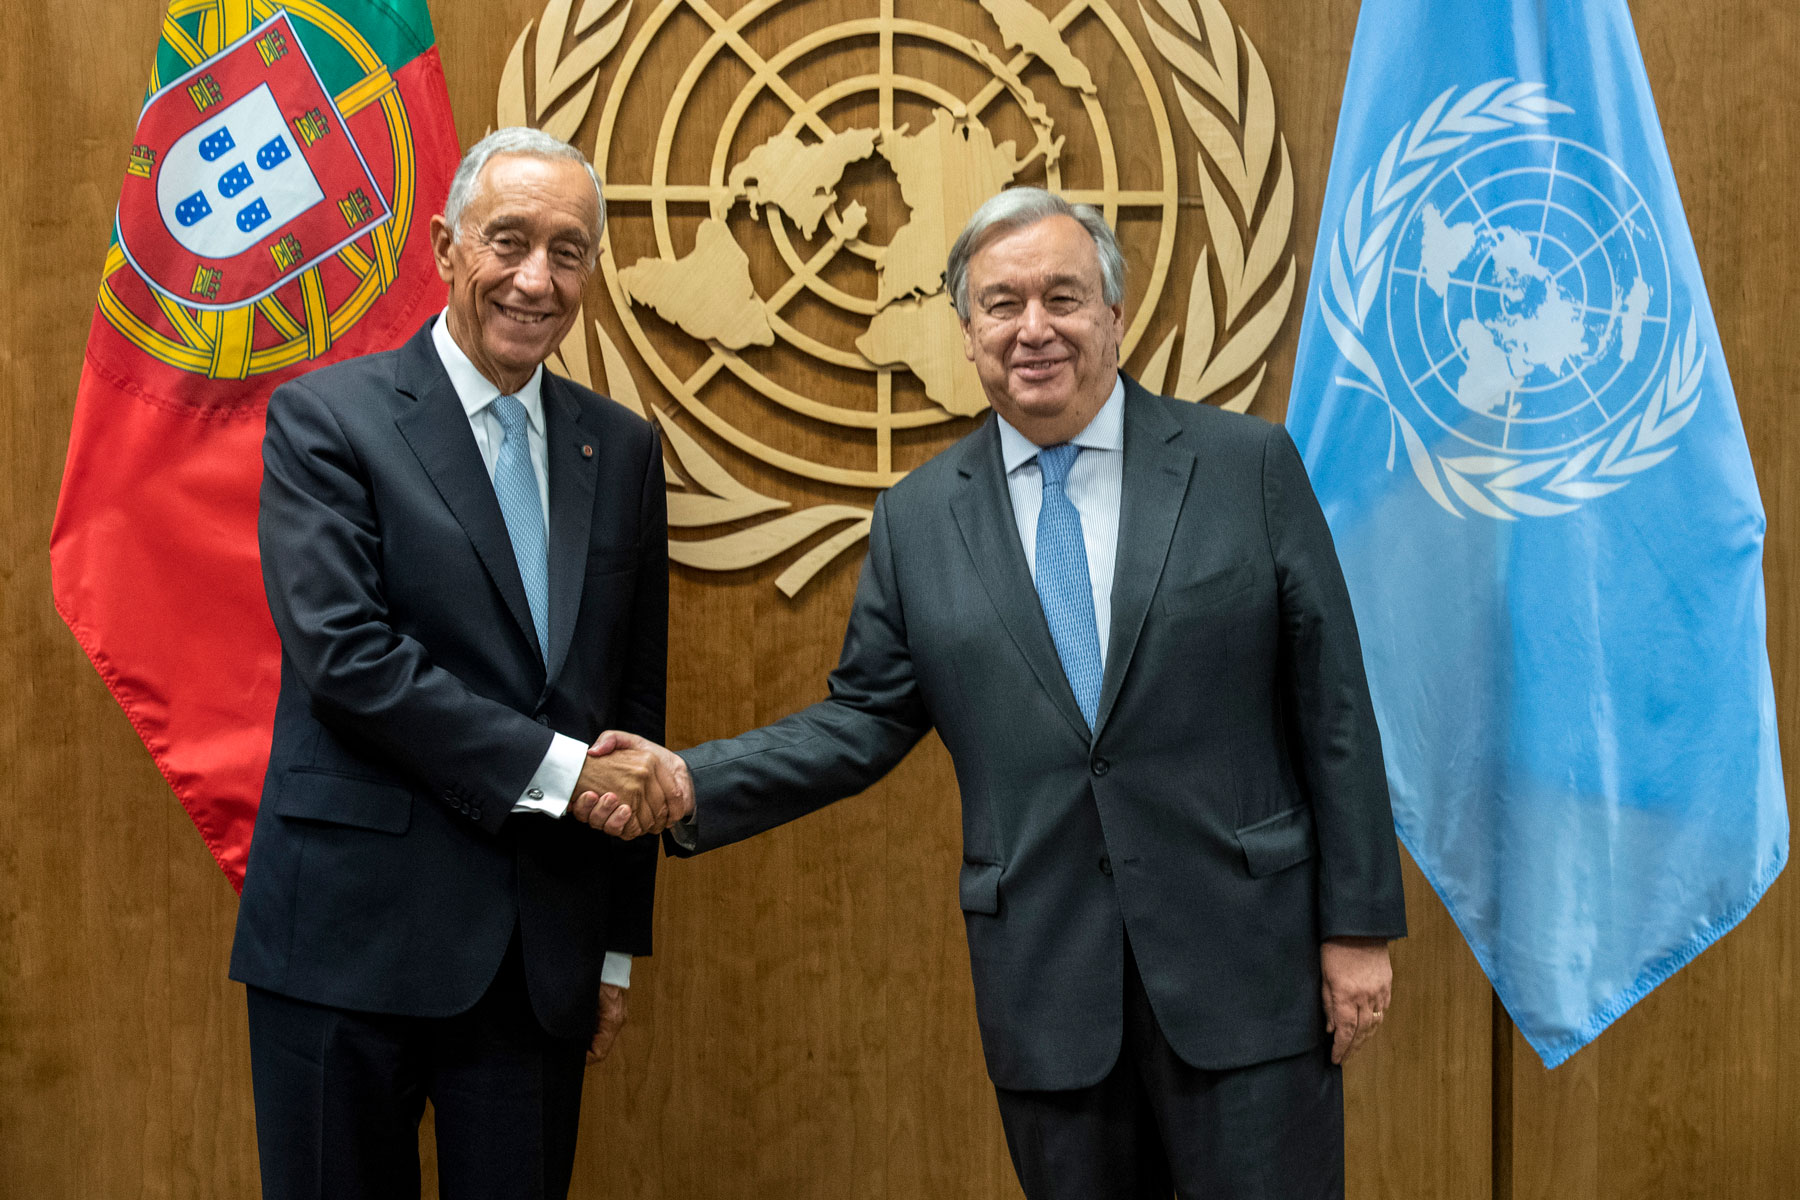 Marcelo Rebelo de Sousa, President of Portugal and Antonio Guterres